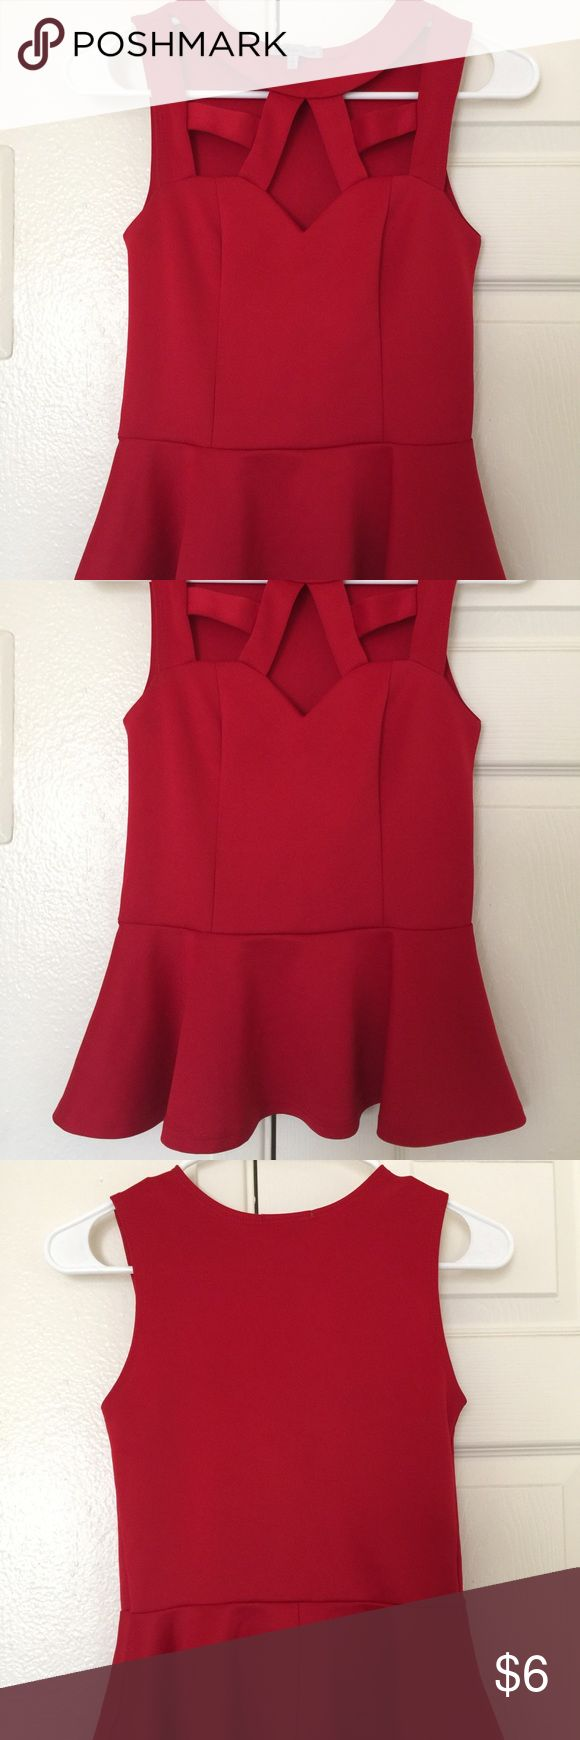 Charlotte Russe Sexy Red Peplum Top Size S Gorgeous and sexy red peplum top in a size small! In great condition! Charlotte Russe Tops Blouses